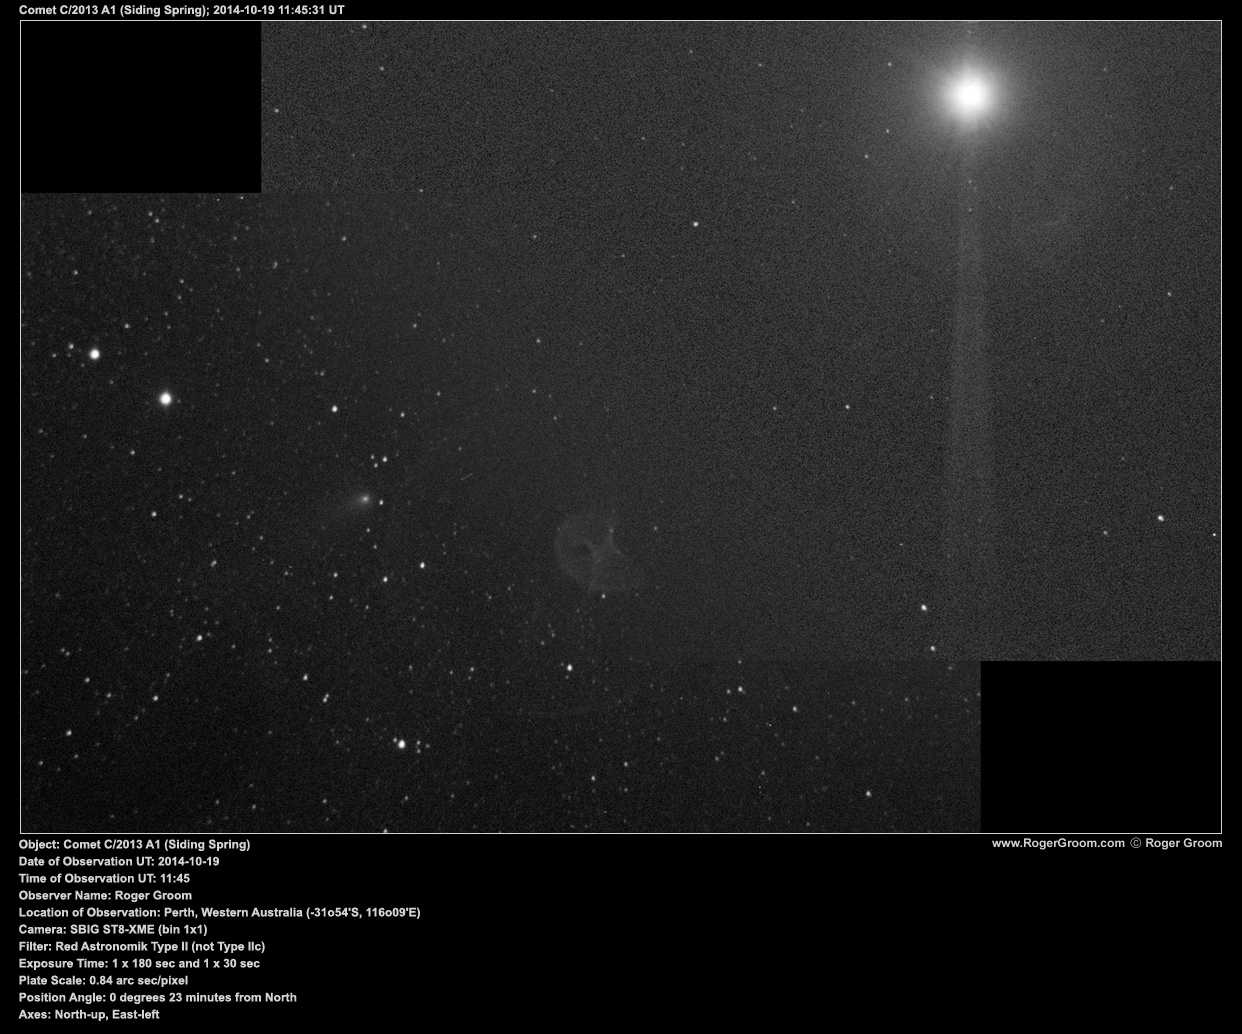 Object: Comet C/2013 A1 (Siding Spring) Date of Observation UT: 2014-10-19 Time of Observation UT: 11:45 Observer Name: Roger Groom Location of Observation: Perth, Western Australia (-31o54'S, 116o09'E) Camera: SBIG ST8-XME (bin 1x1) Filter: Red Astronomik Type II (not Type IIc) Exposure Time: 1 x 180 sec and 1 x 30 sec Plate Scale: 0.84 arc sec/pixel Position Angle: 0 degrees 23 minutes from North Axes: North-up, East-left